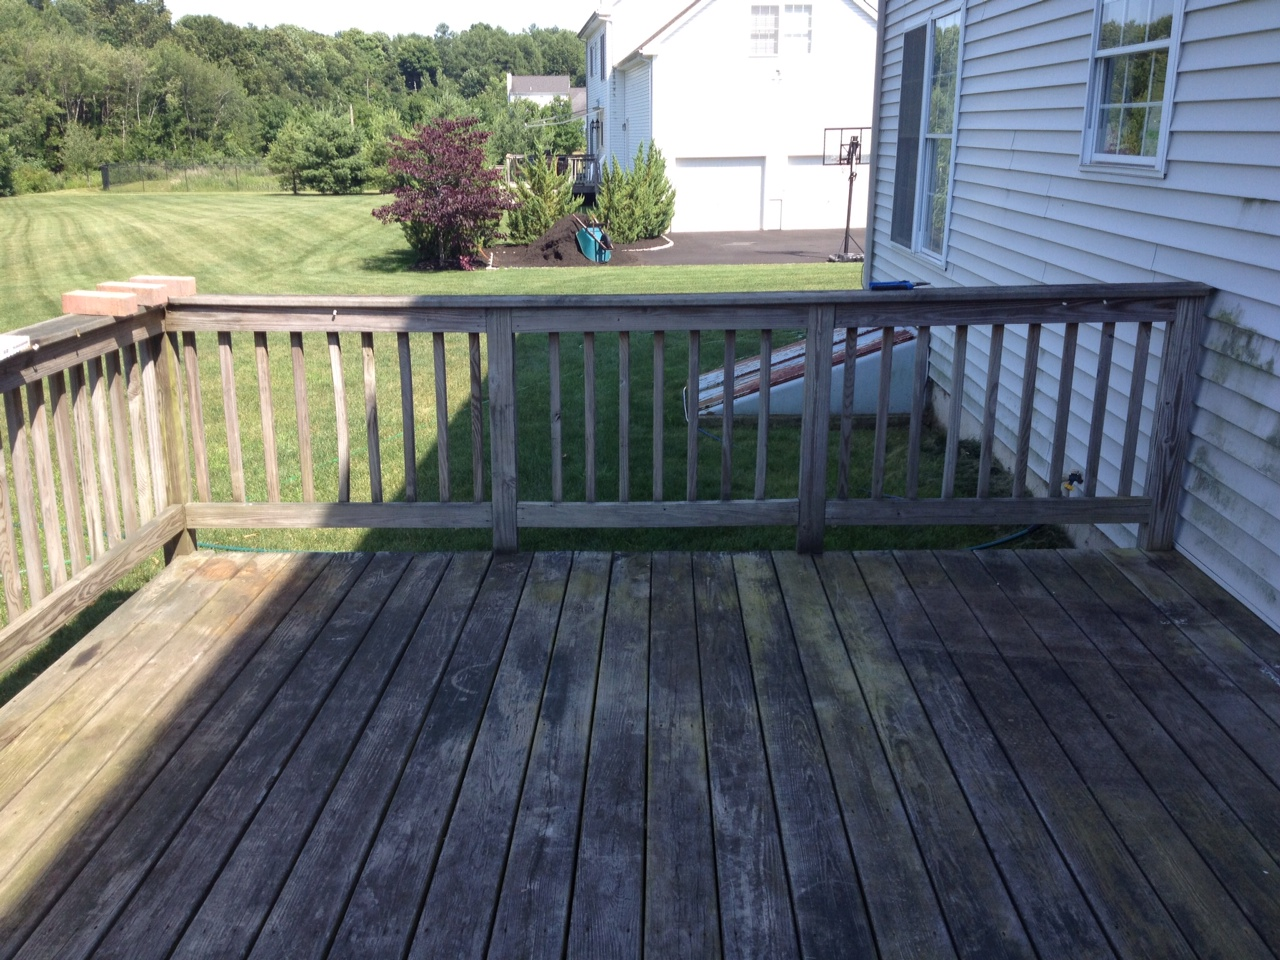 The ranga blog dirty decks done dirt cheap for Cheapest place for decking